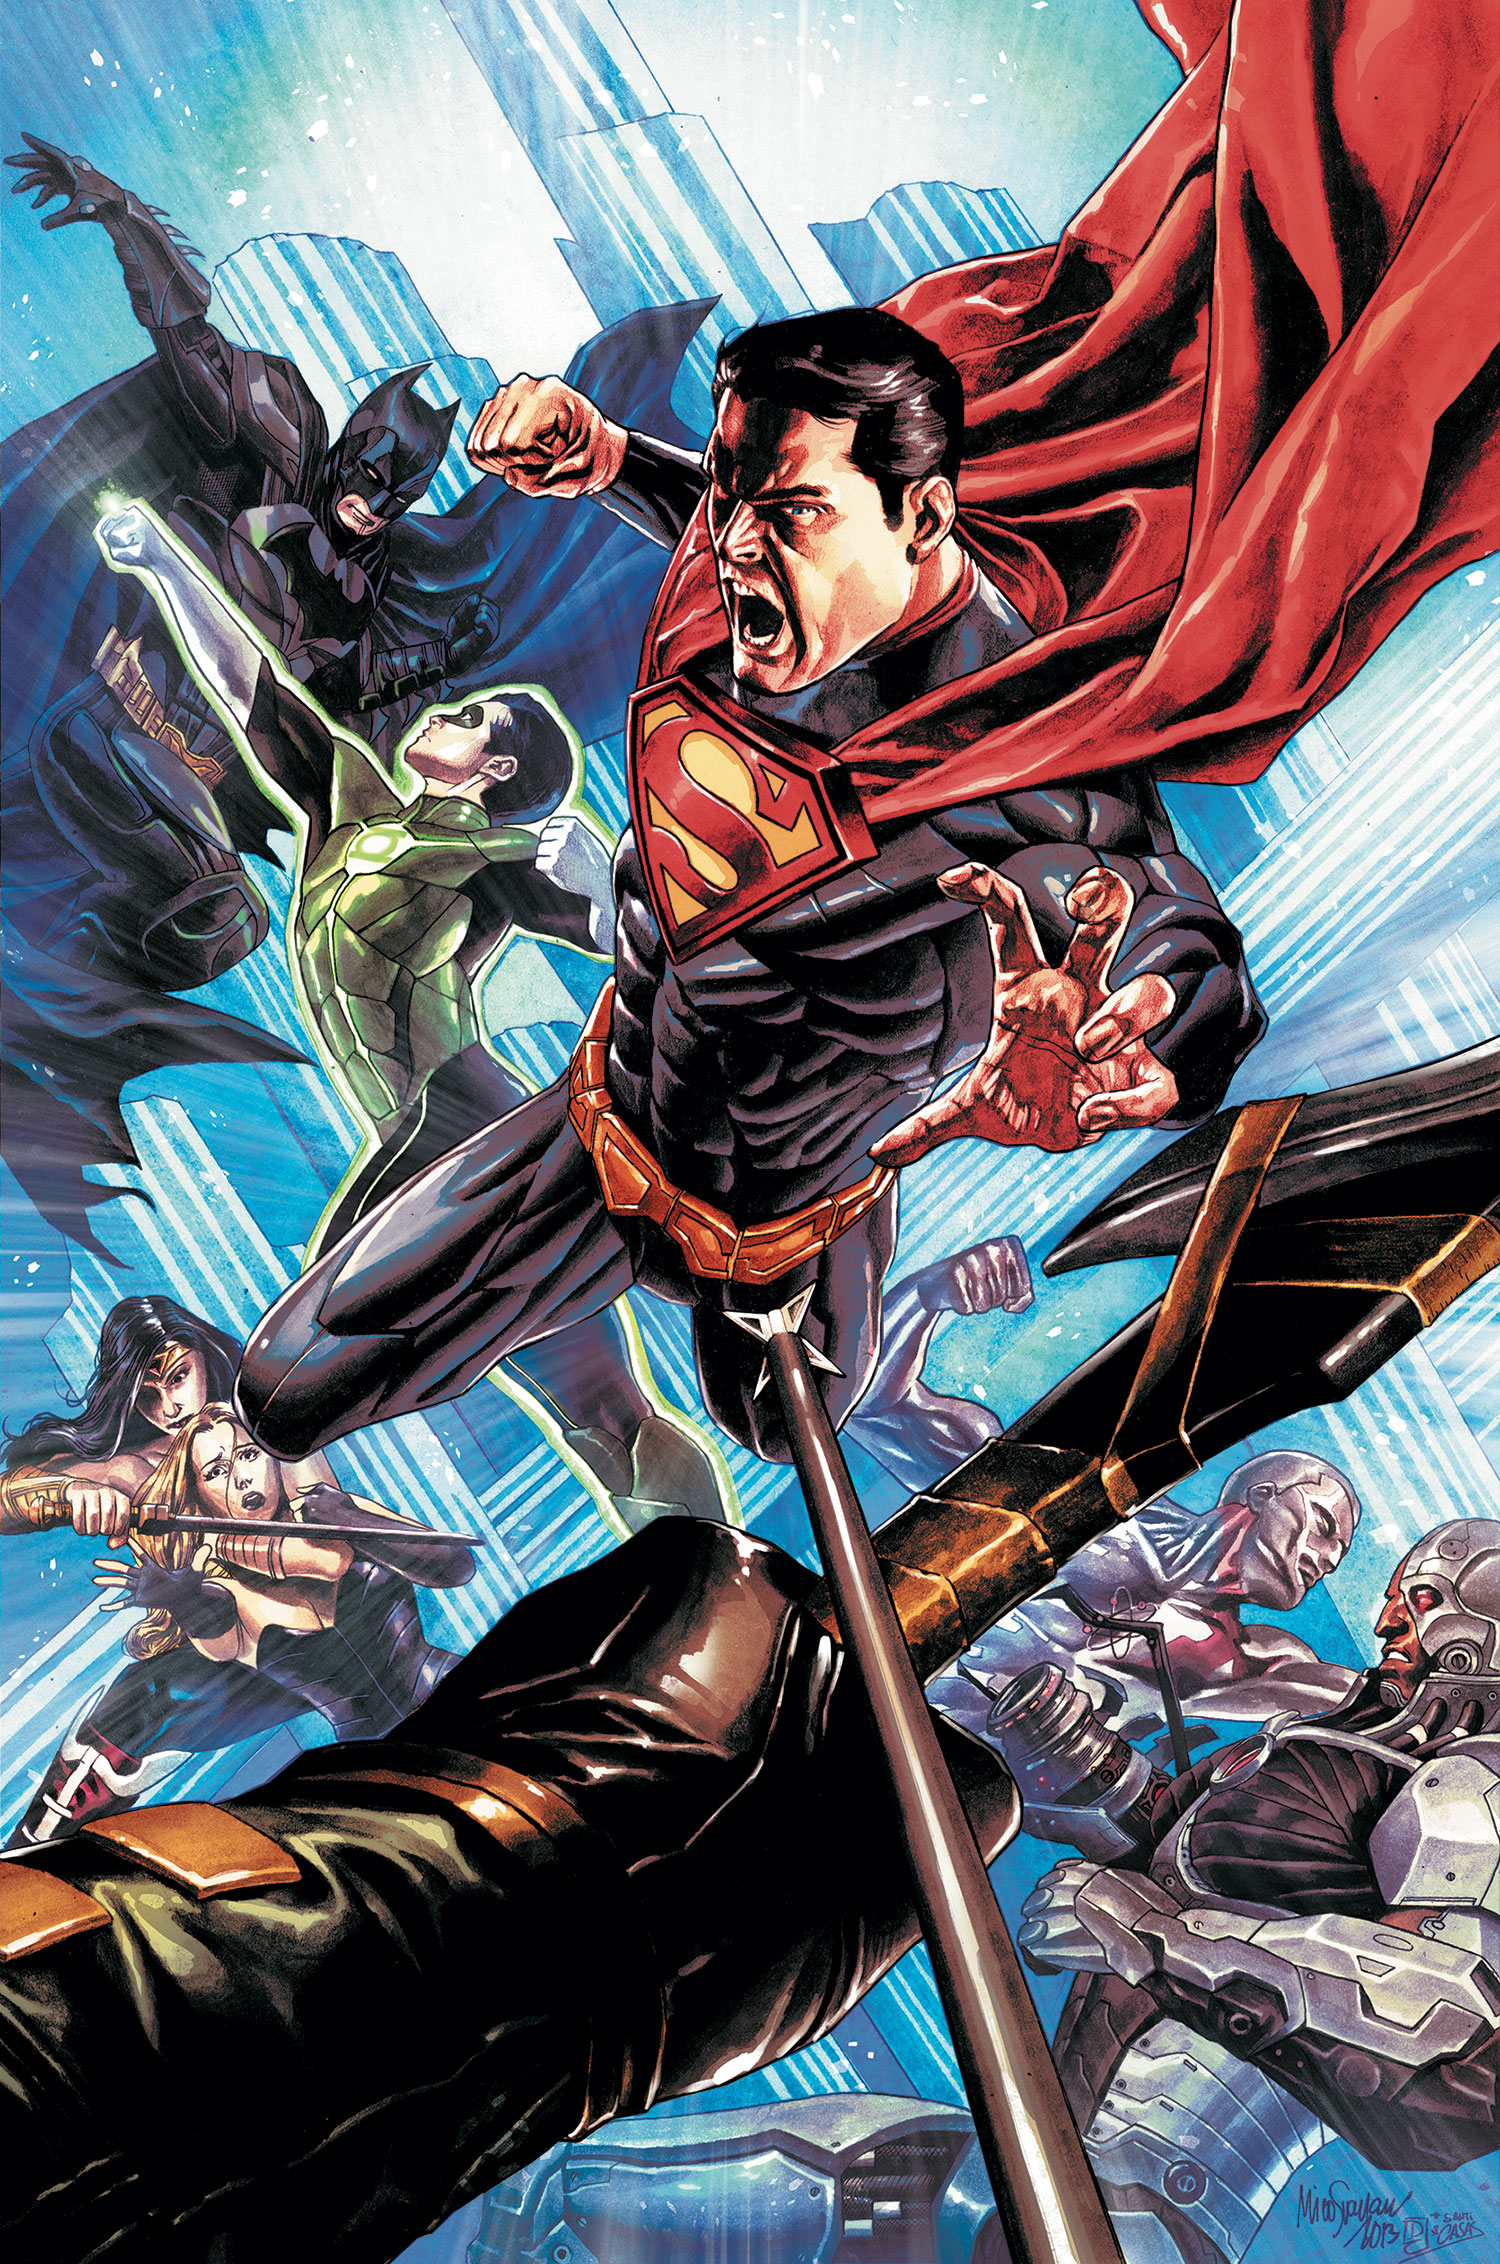 Injustice Gods Among Us Vol 1 11 Textless.jpg